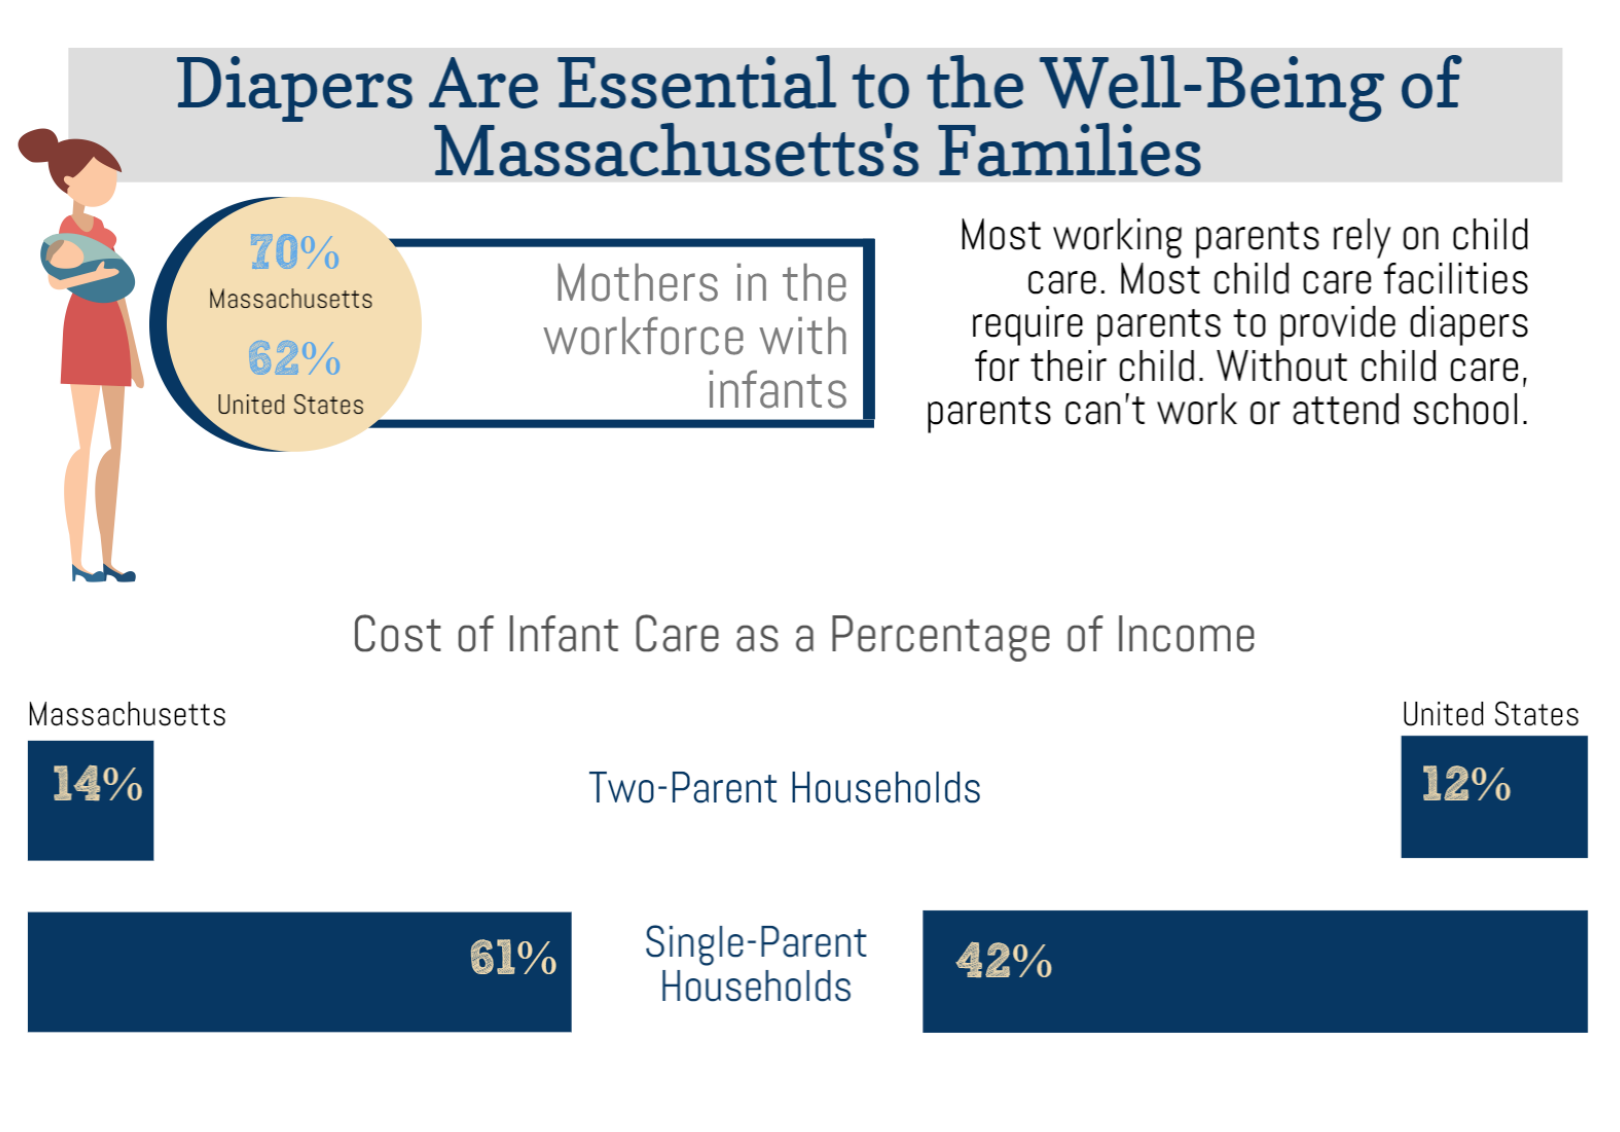 Graphic courtesy of the National Diaper Bank